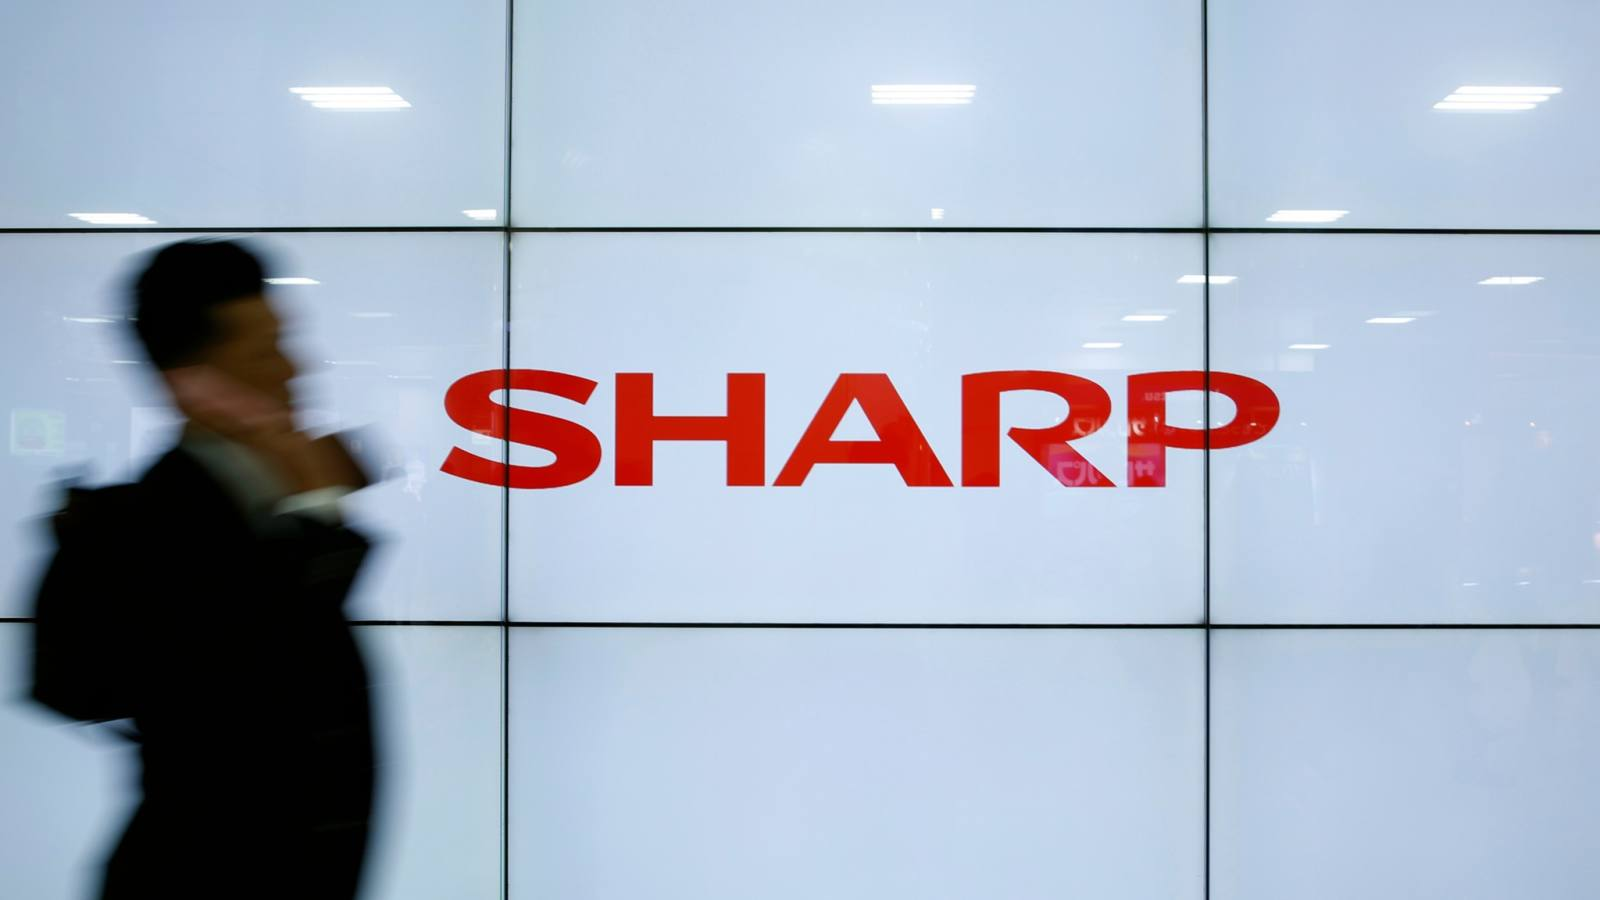 Sharp has been trying to reclaim the rights to use its TV brand in the U.S. after selling them to China's Hisense in 2016.